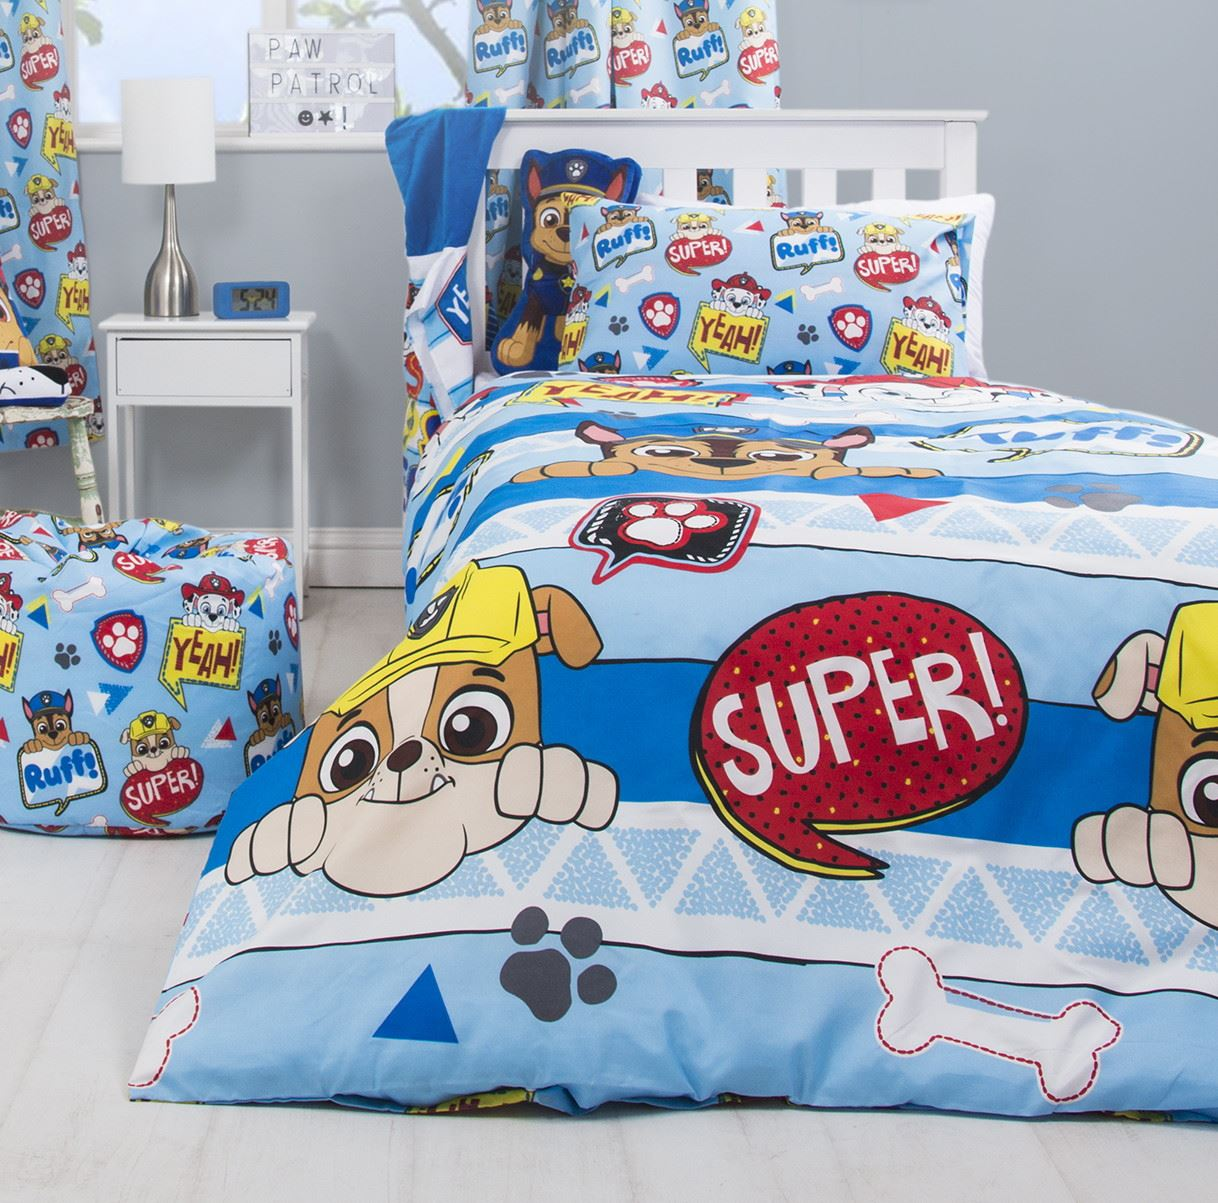 Official-Paw-Patrol-Licensed-Duvet-Covers-Single-Double-Chase-Skye-Marshall thumbnail 33